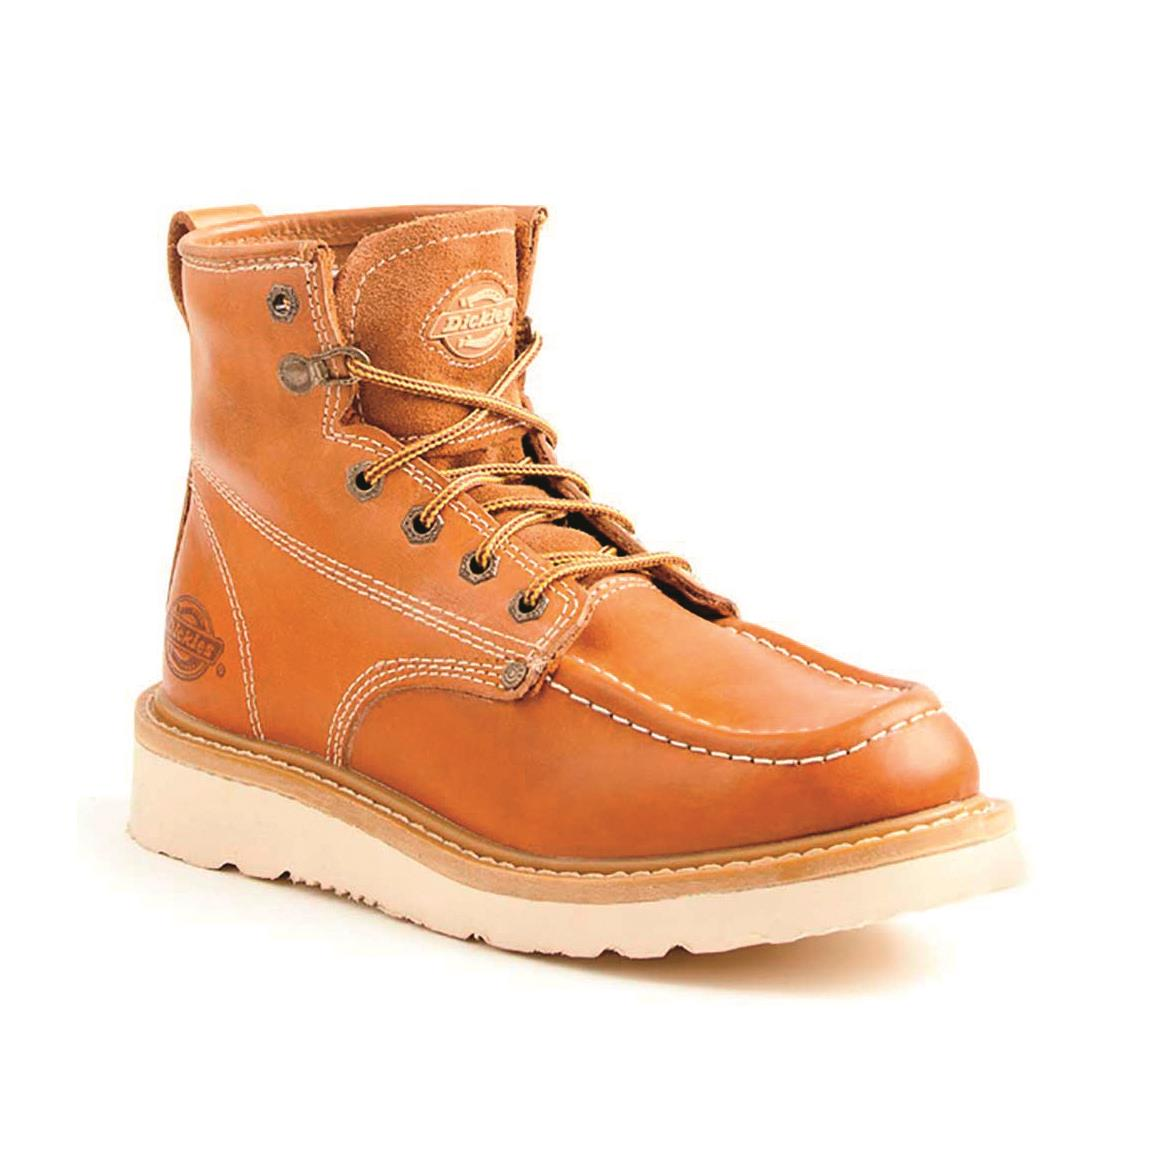 Dickies Men's Trader Work Boots, Tan